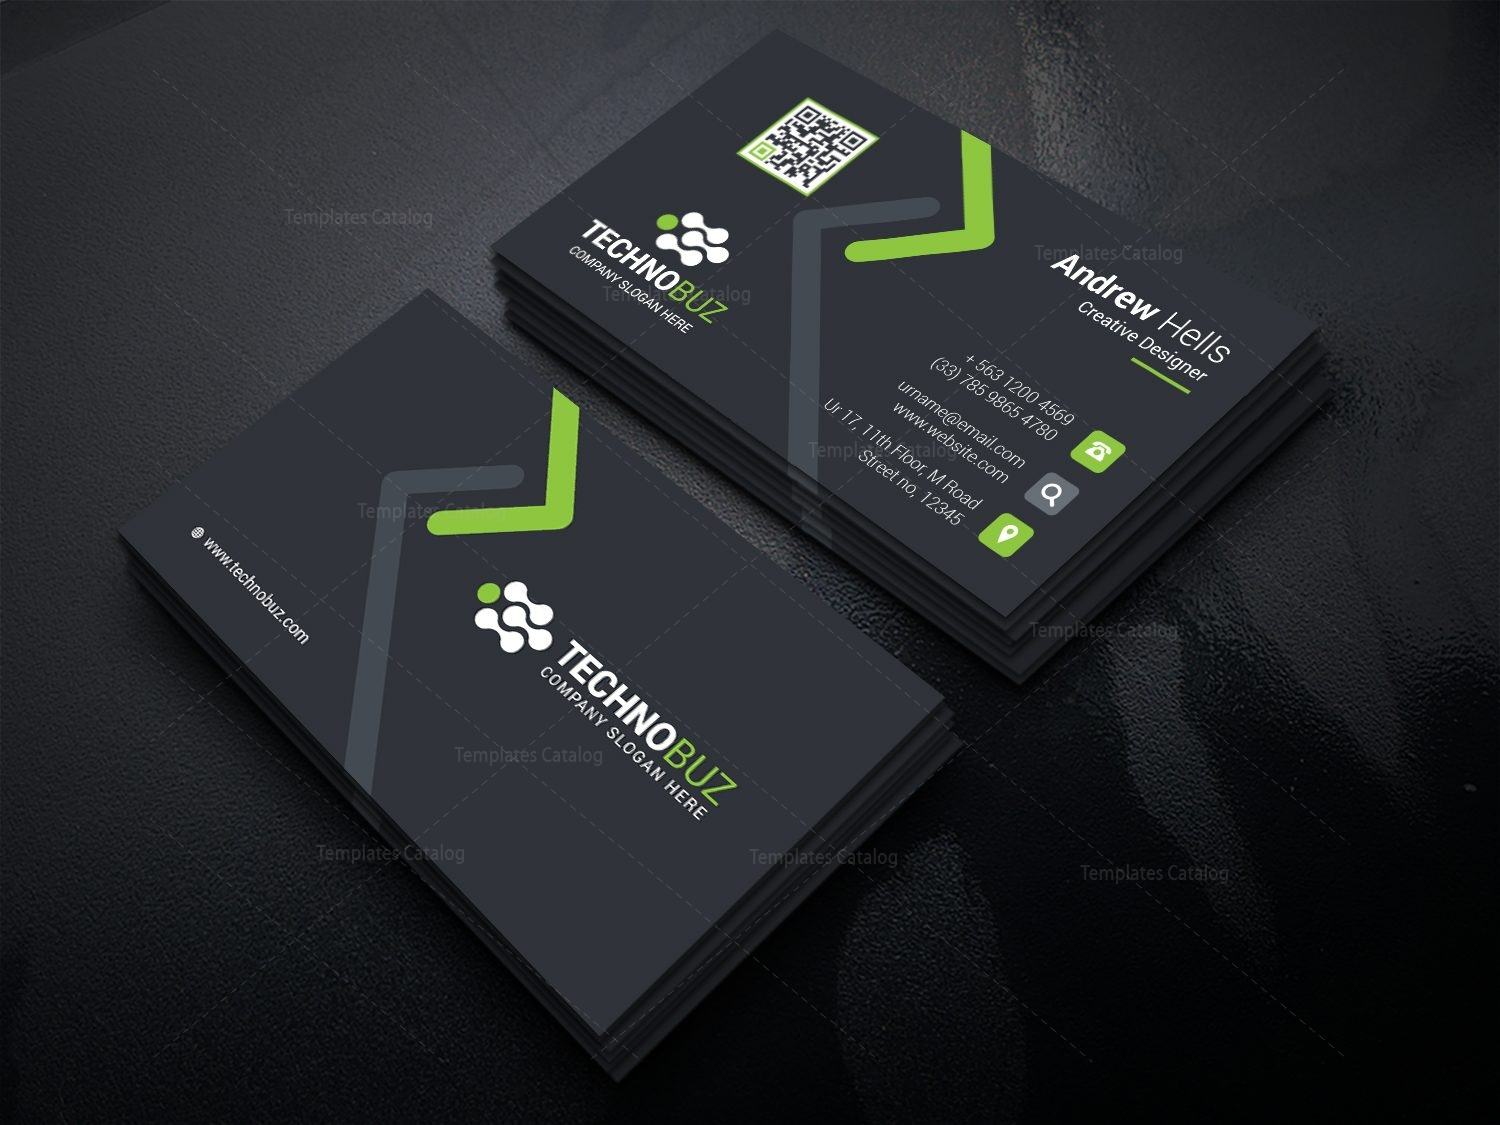 High tech company business card template 000736 template catalog high tech company business card template 5 cheaphphosting